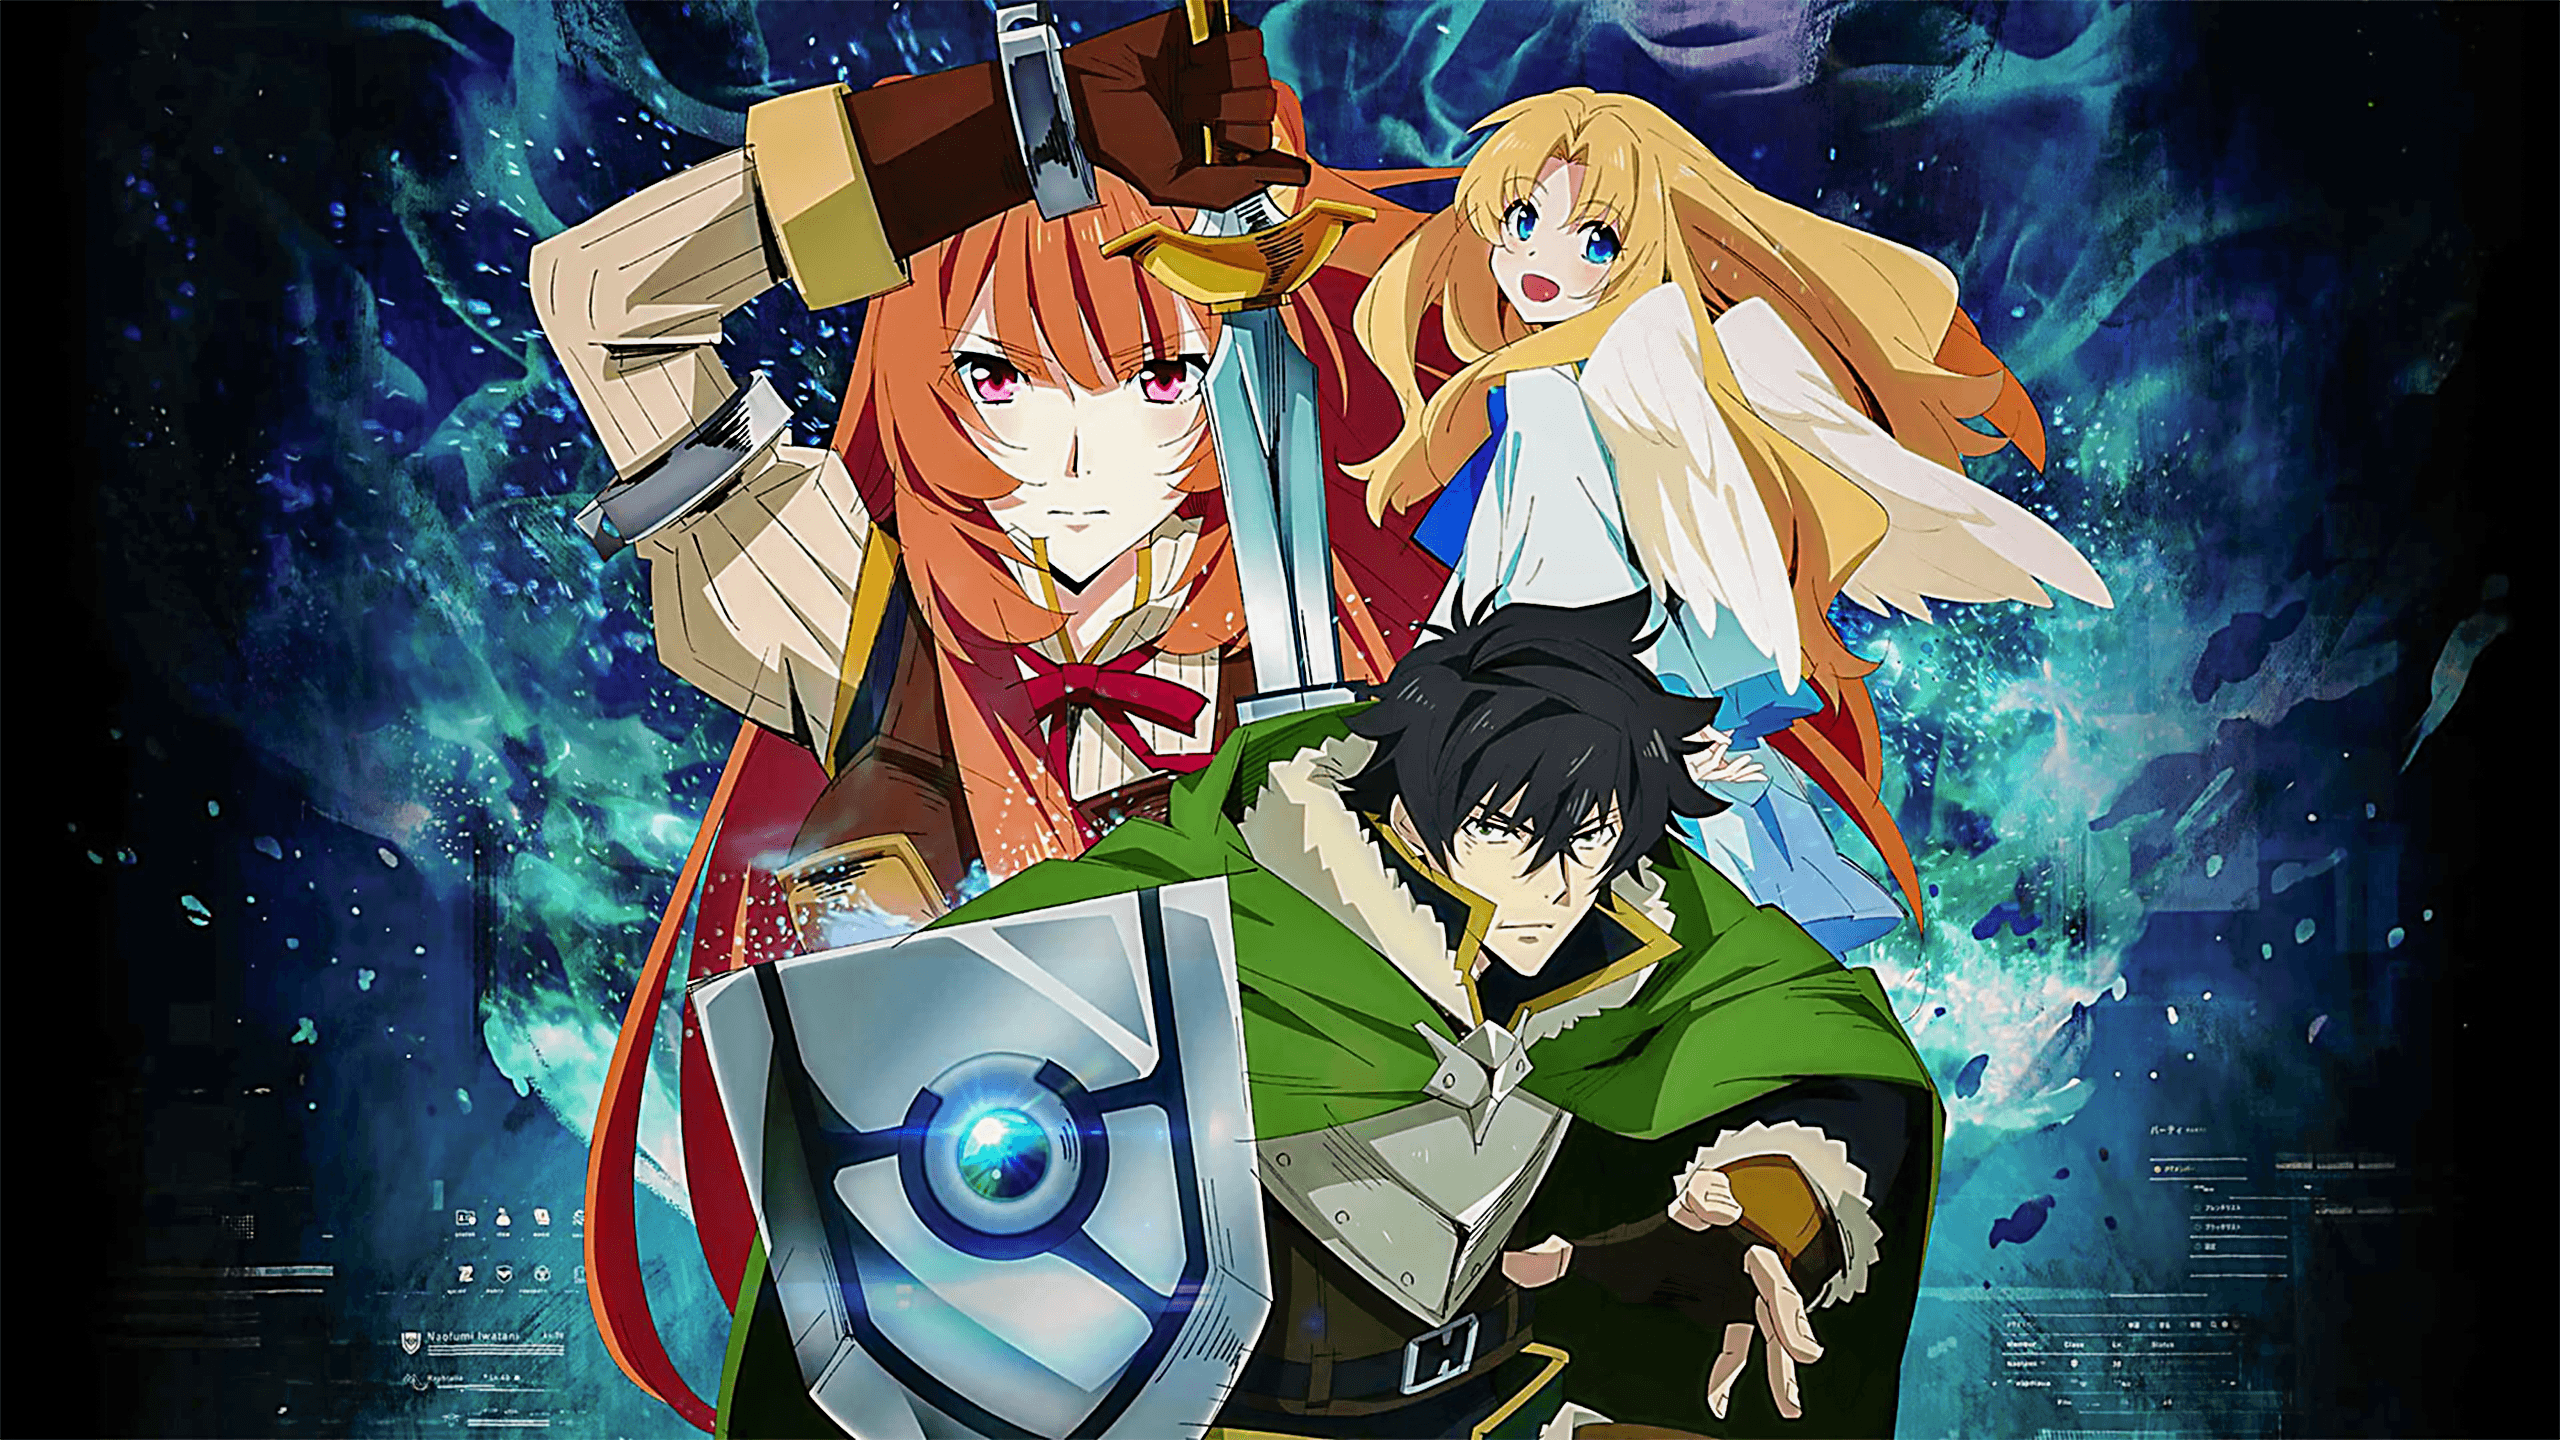 Wallpapers : The Rising of the Shield Hero, Tate no Y sha no